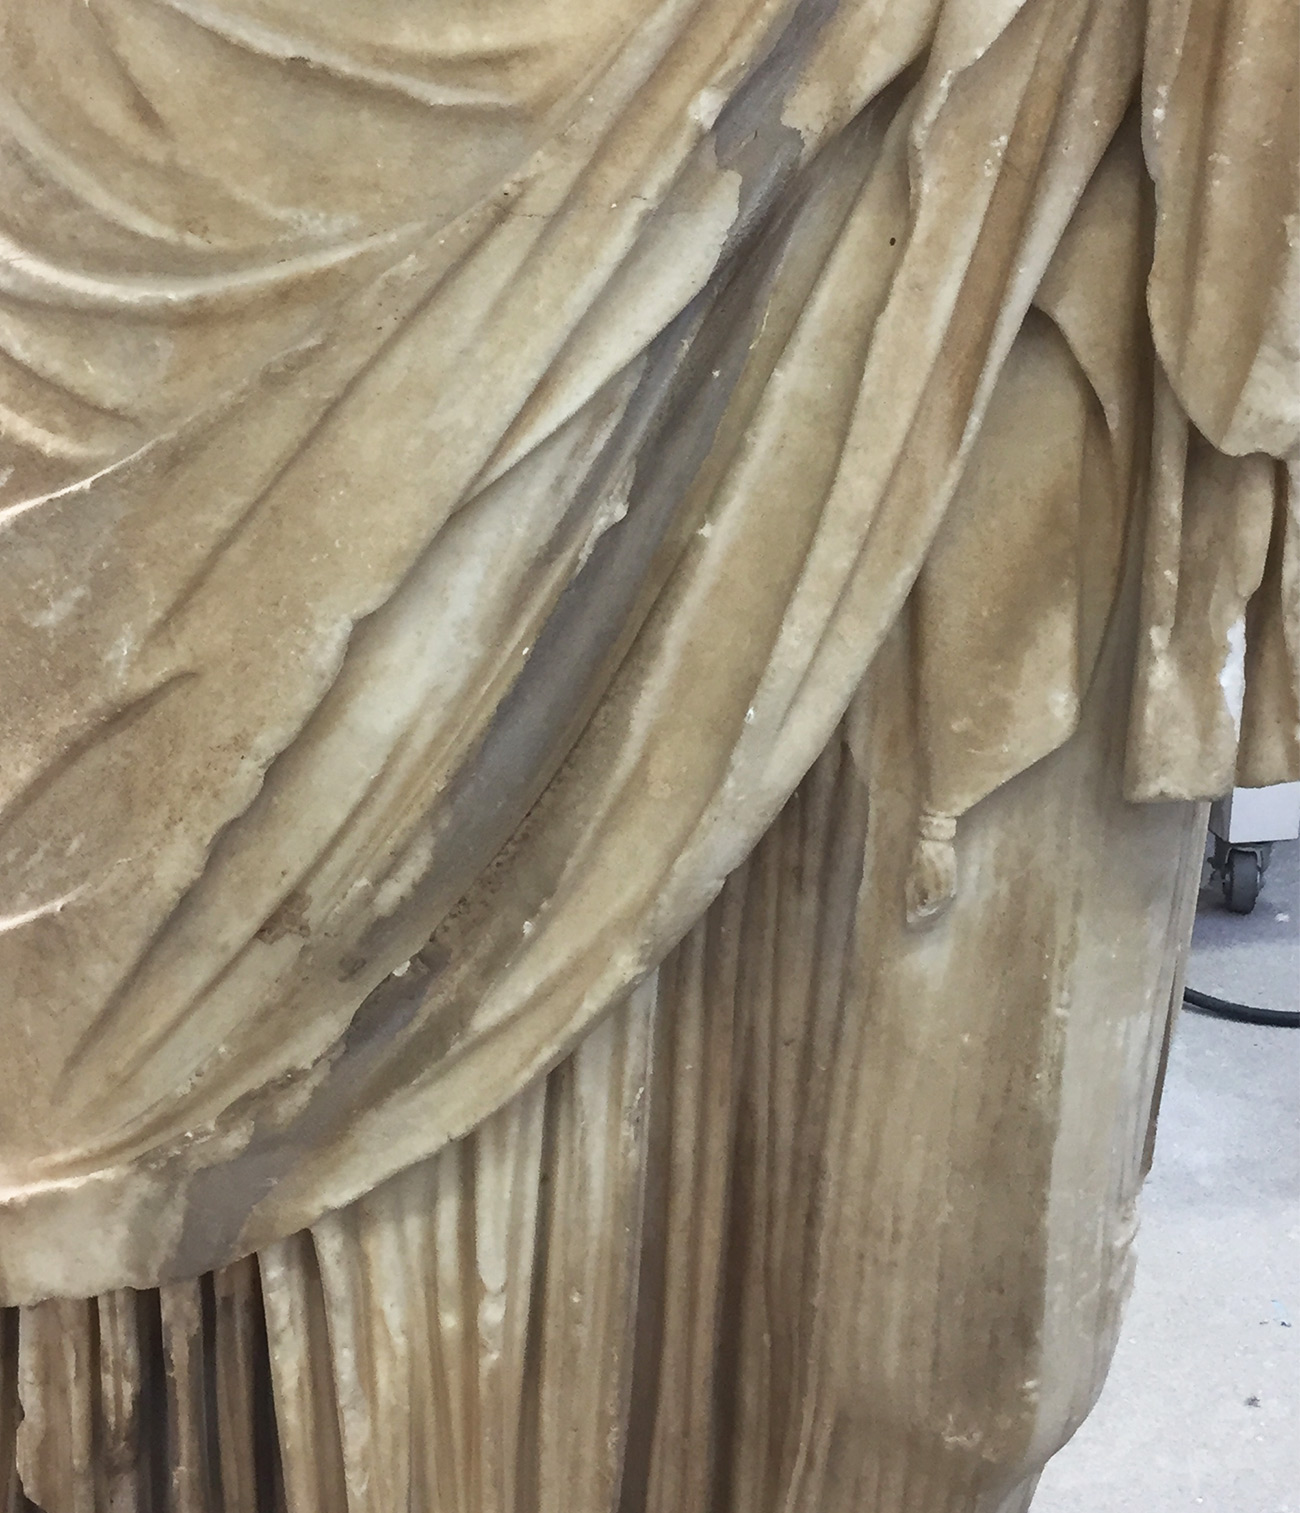 Calcareous (chalky) material on statue